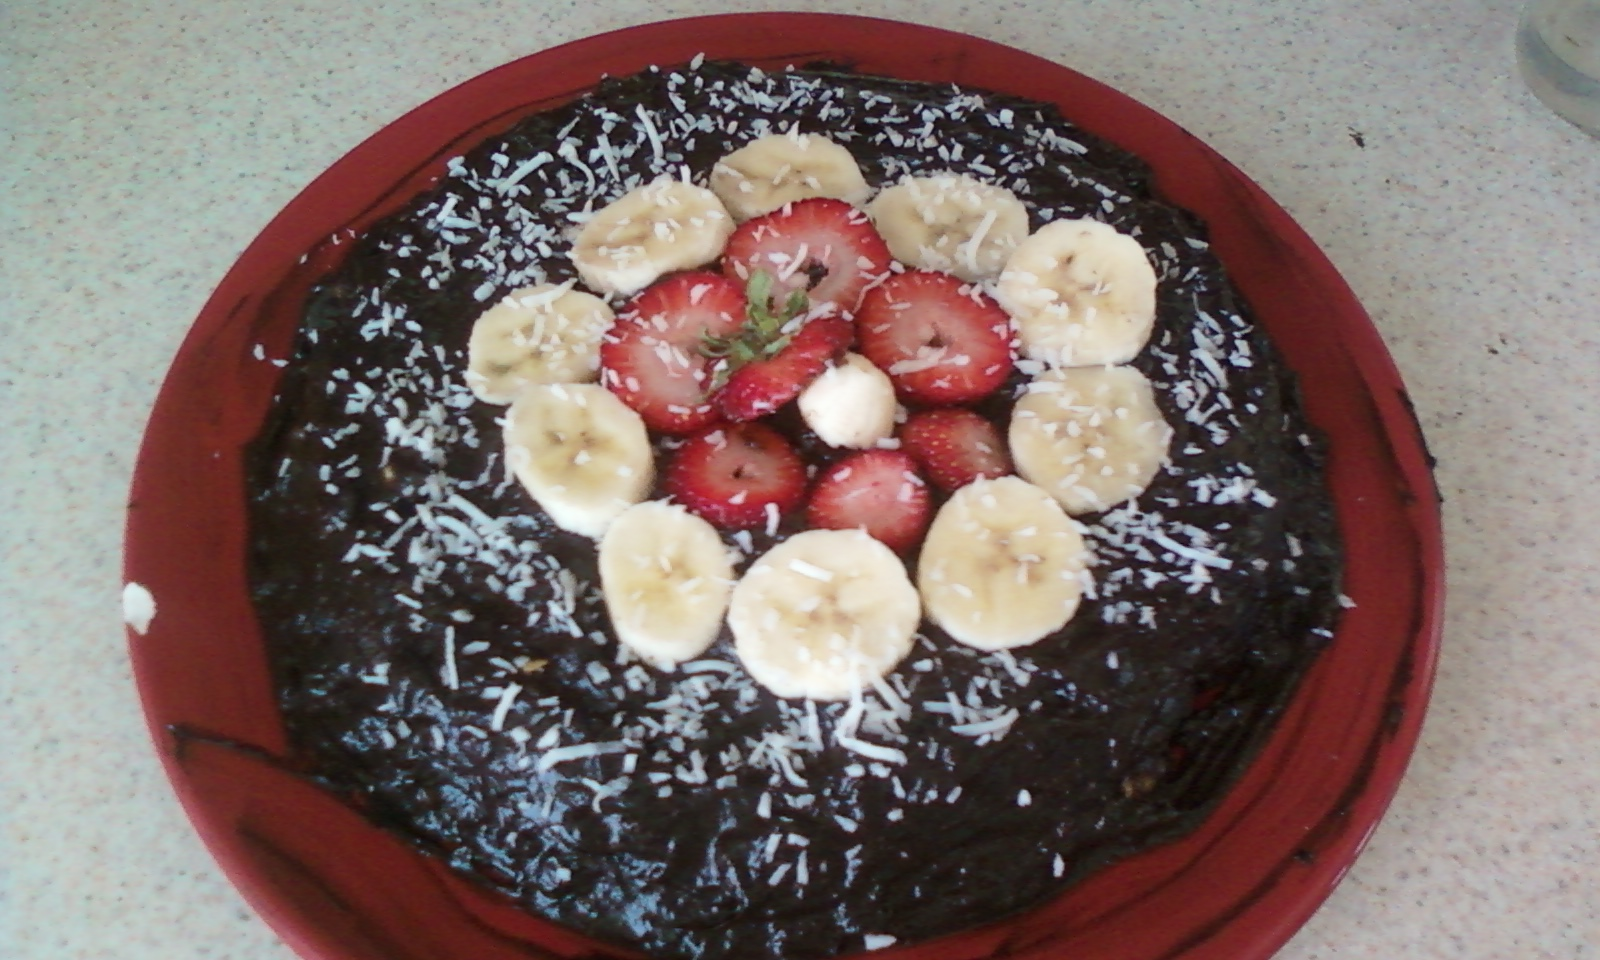 Birthday Cake Images For Advocate : Healthy RAW Birthday Cake - The Healthy AdvocateThe ...